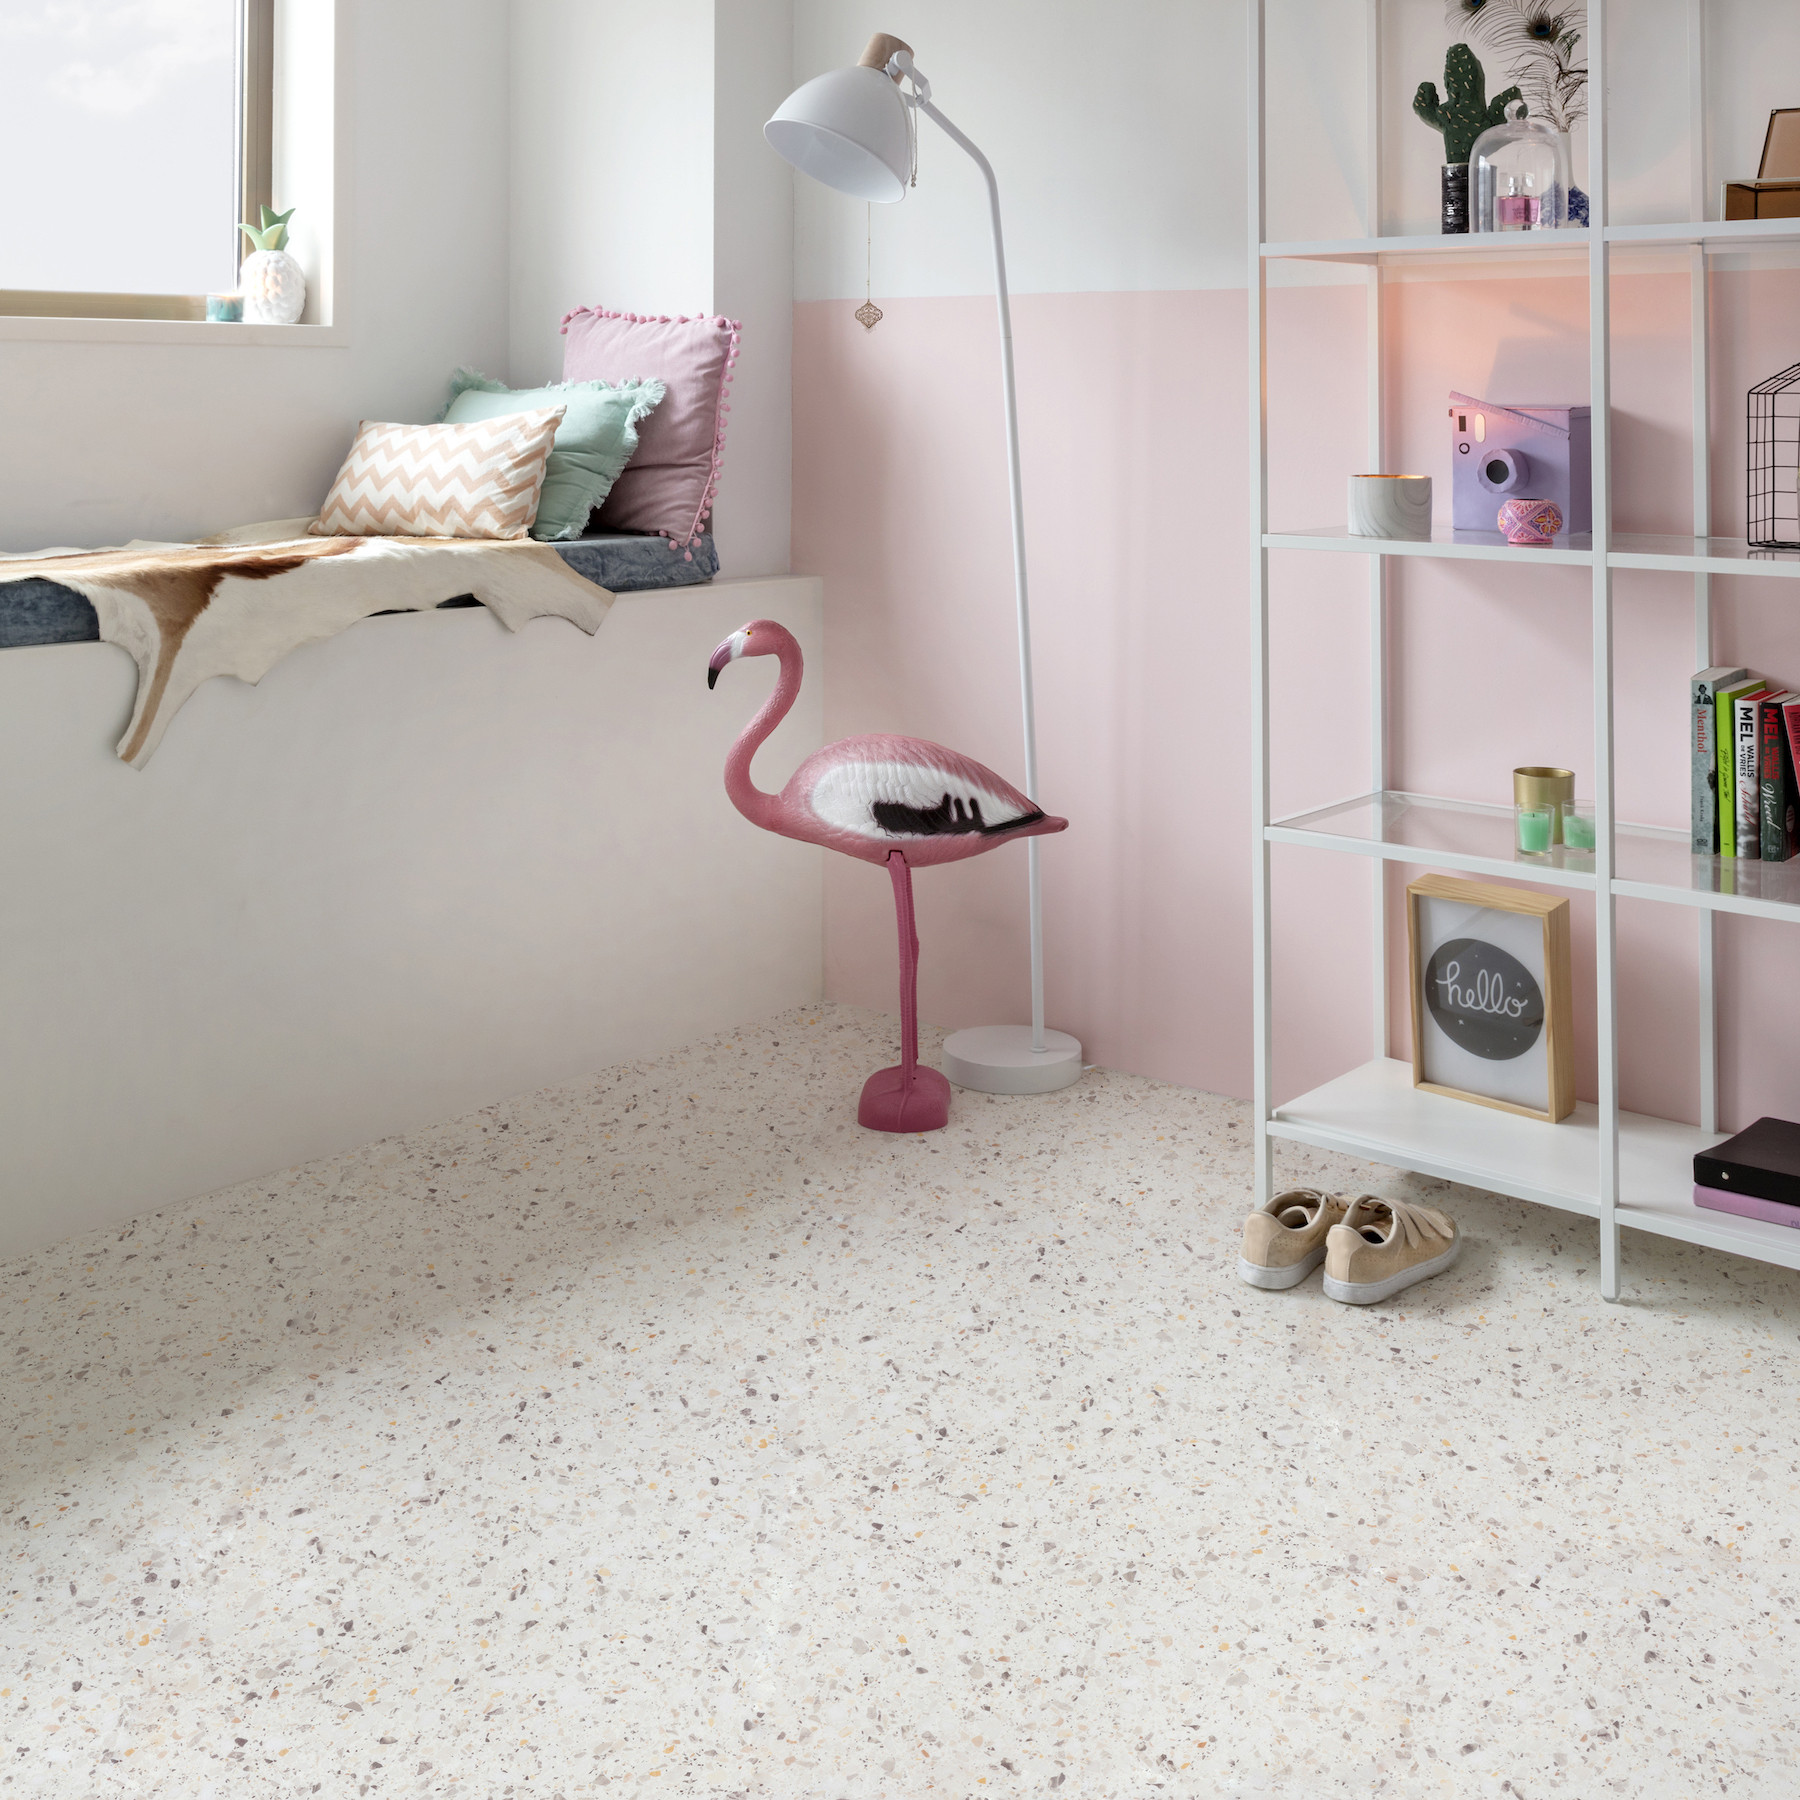 The joyful Terrazzo speckles are back on track!